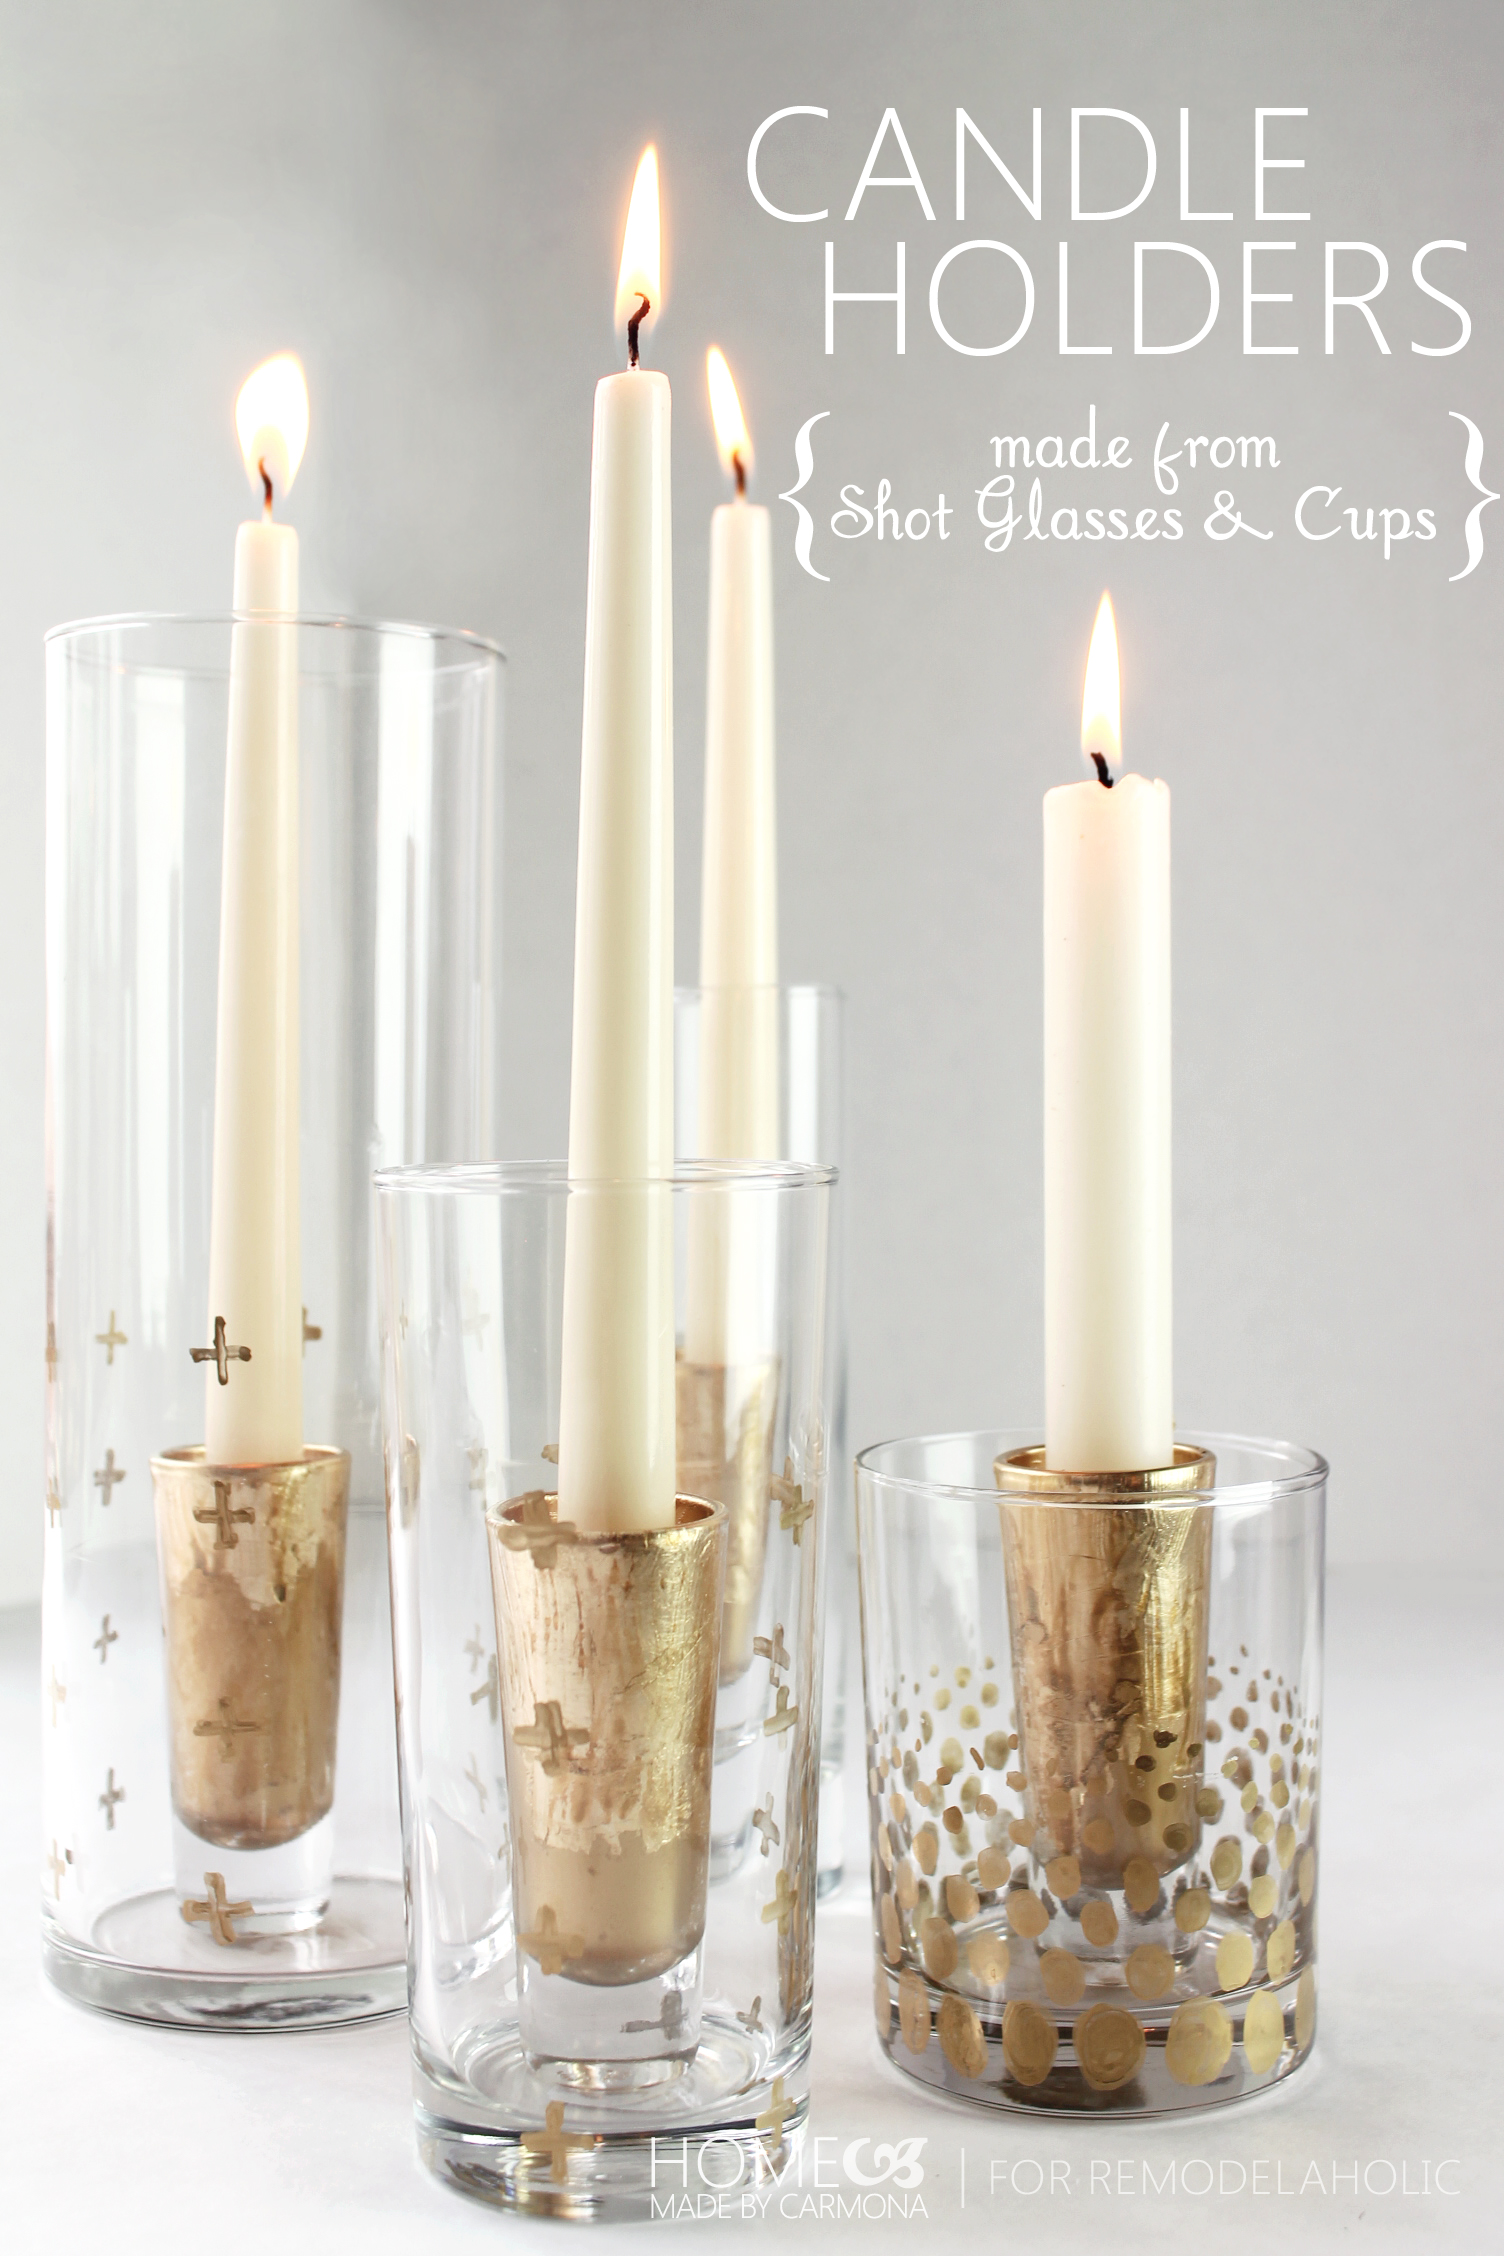 Lovely Diy Candle Holders Part - 14: DIY Candle Holders - Made From Shot Glasses - Home Made By Carmona For  Remodelaholic.